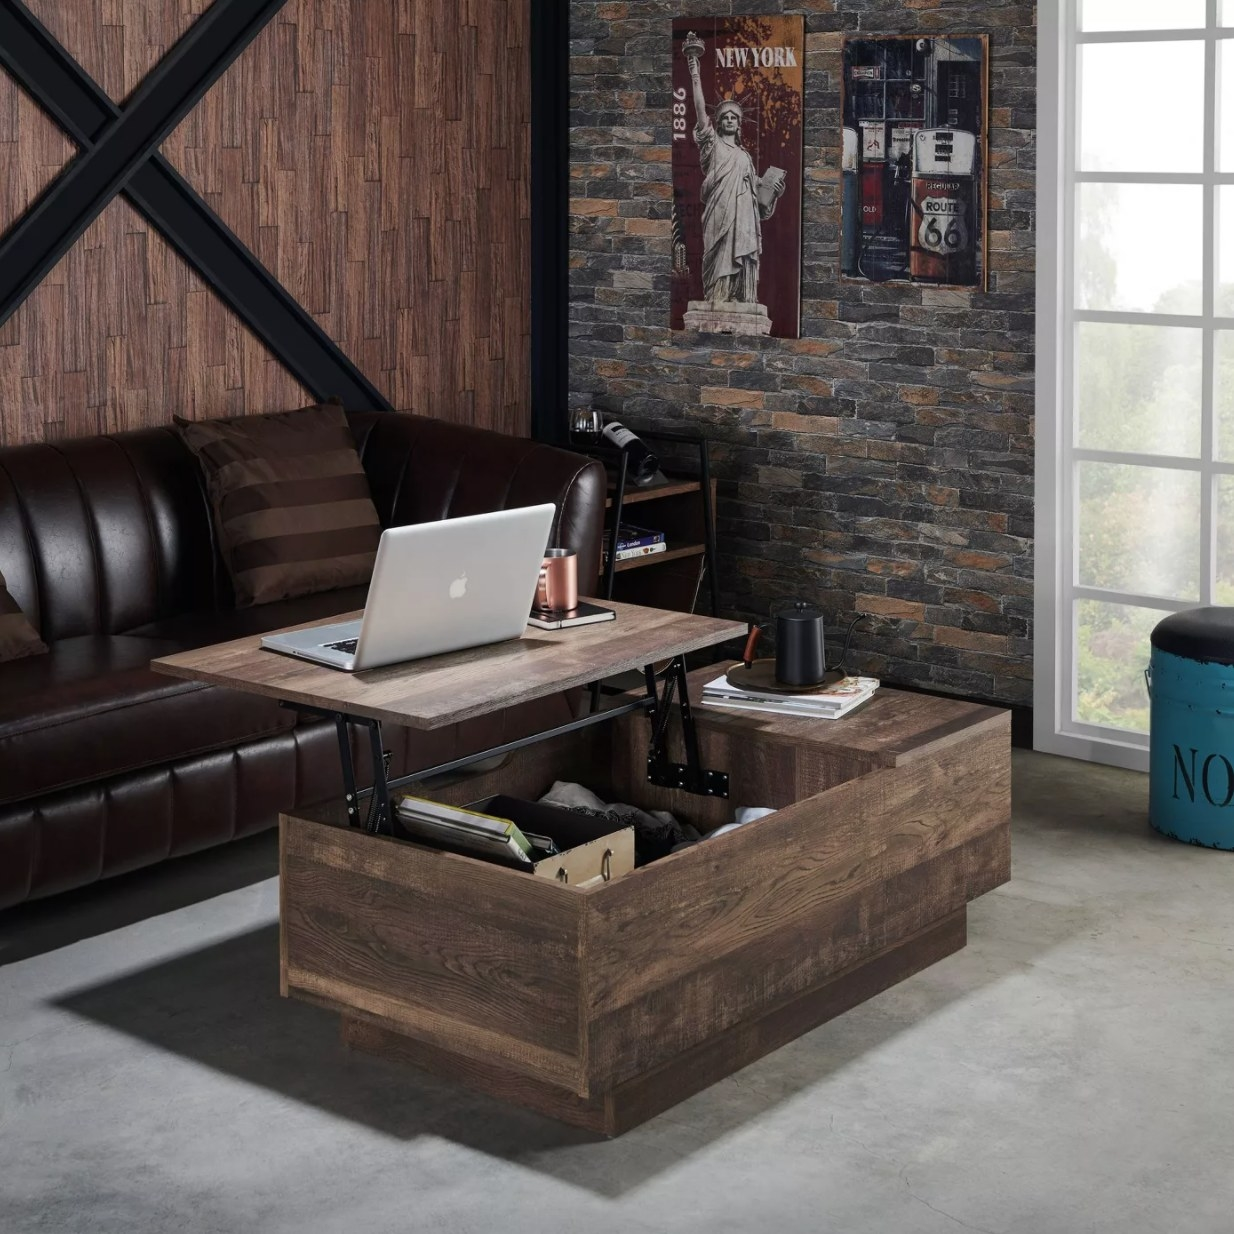 A dark brown wooden coffee table with lift-top and internal storage